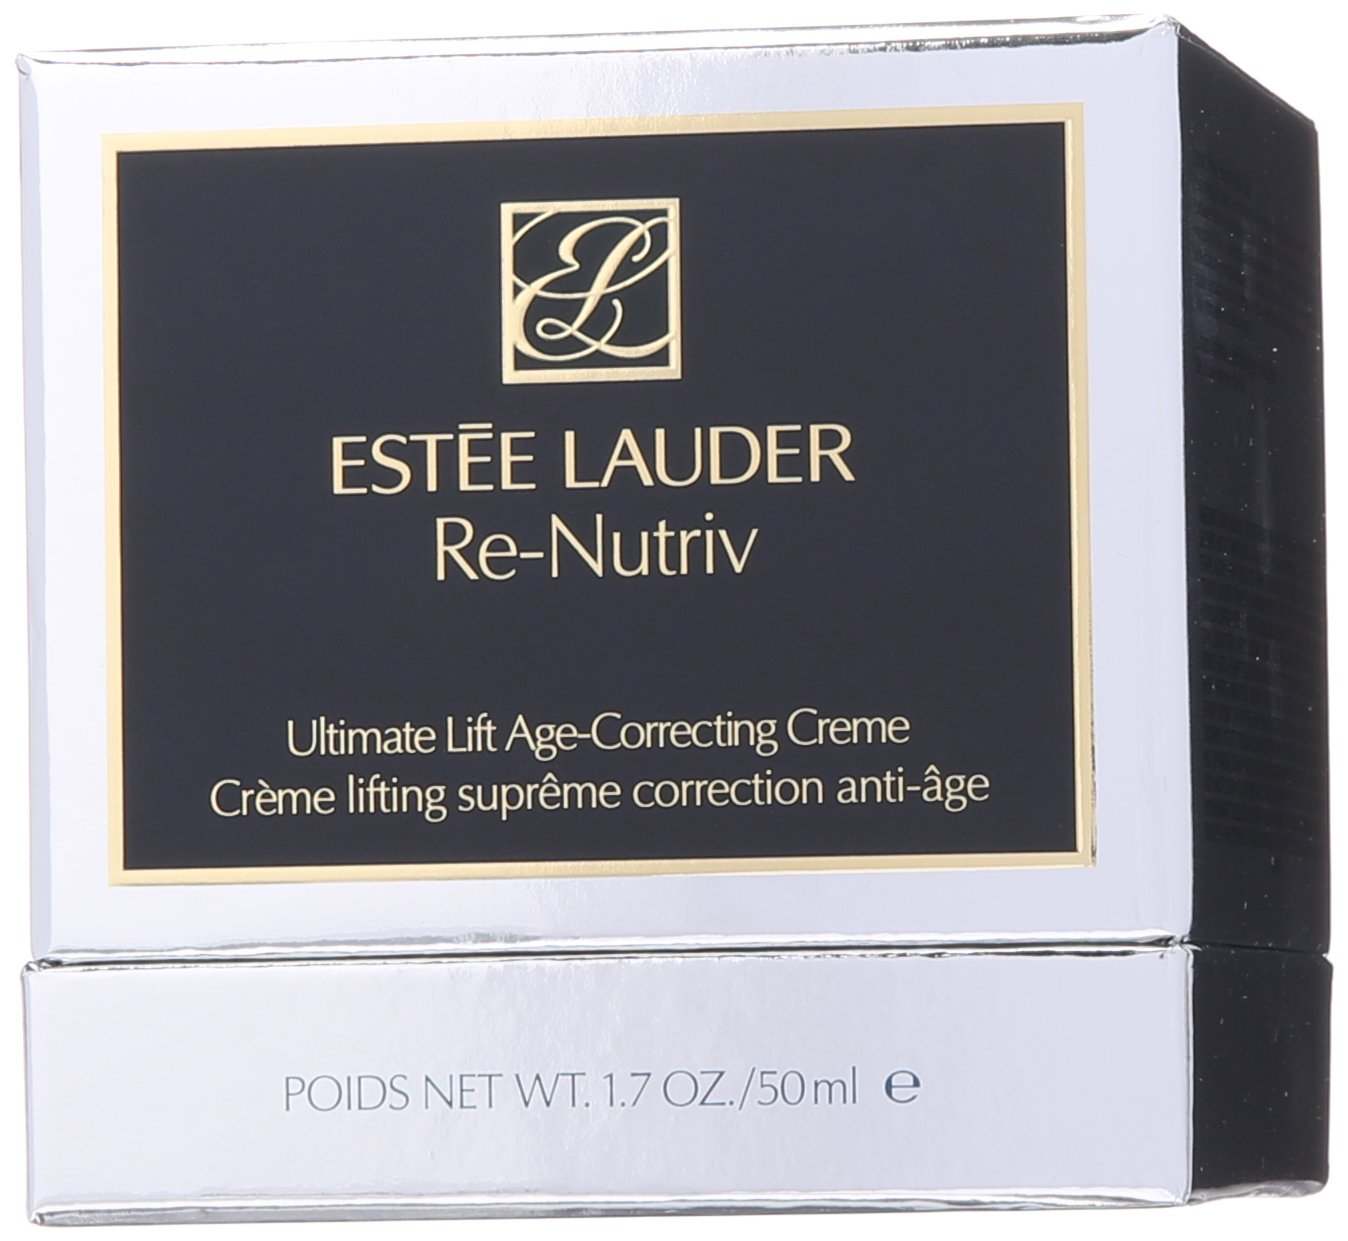 Estee Lauder Re-Nutriv Ultimate Lift Age-Correcting Cream for Unisex, 1.7 Ounce by Estee Lauder (Image #2)